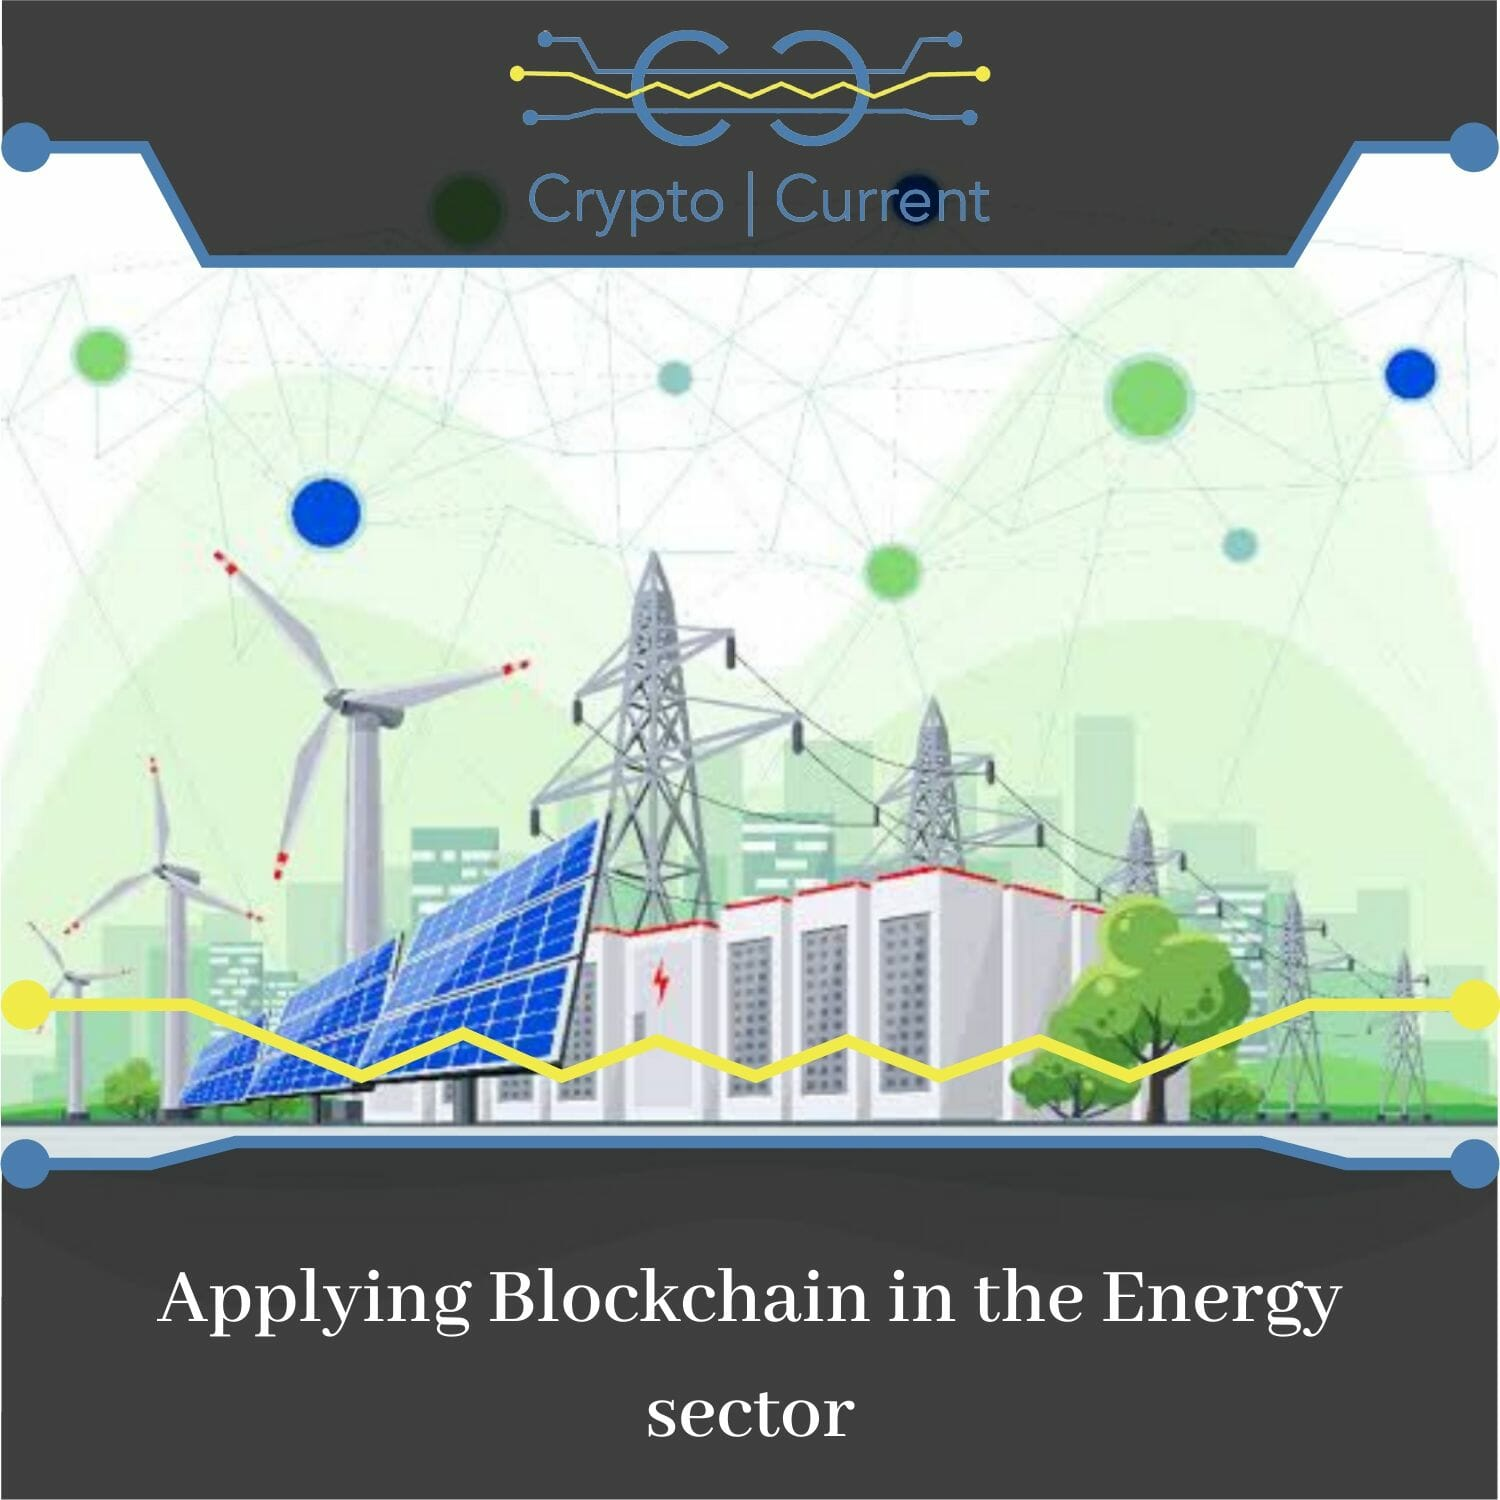 Applying Blockchain in the Energy sector